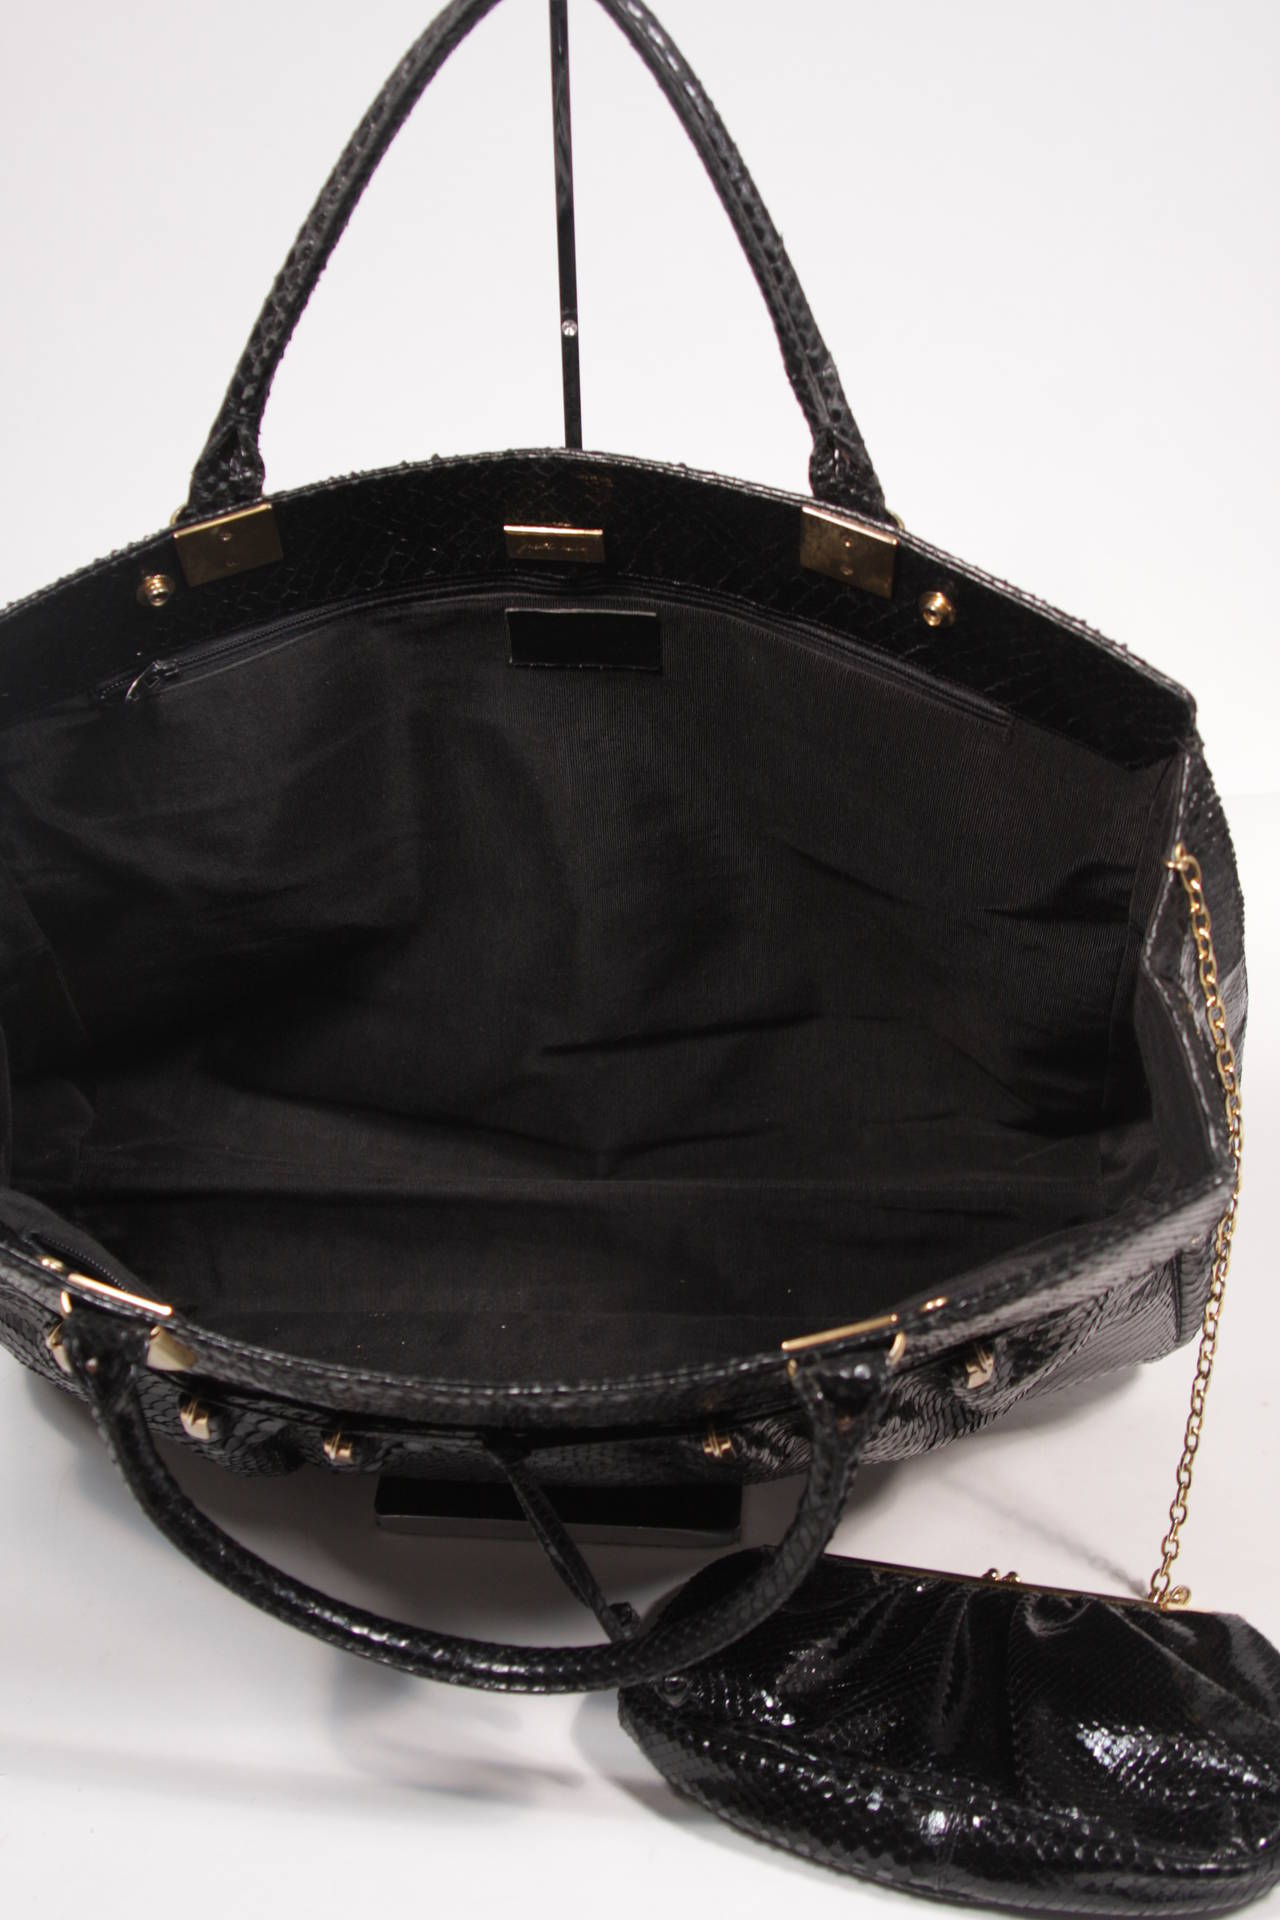 Judith Leiber XL Black Snakeskin Tote with Coin Purse Excellent Condition For Sale 5